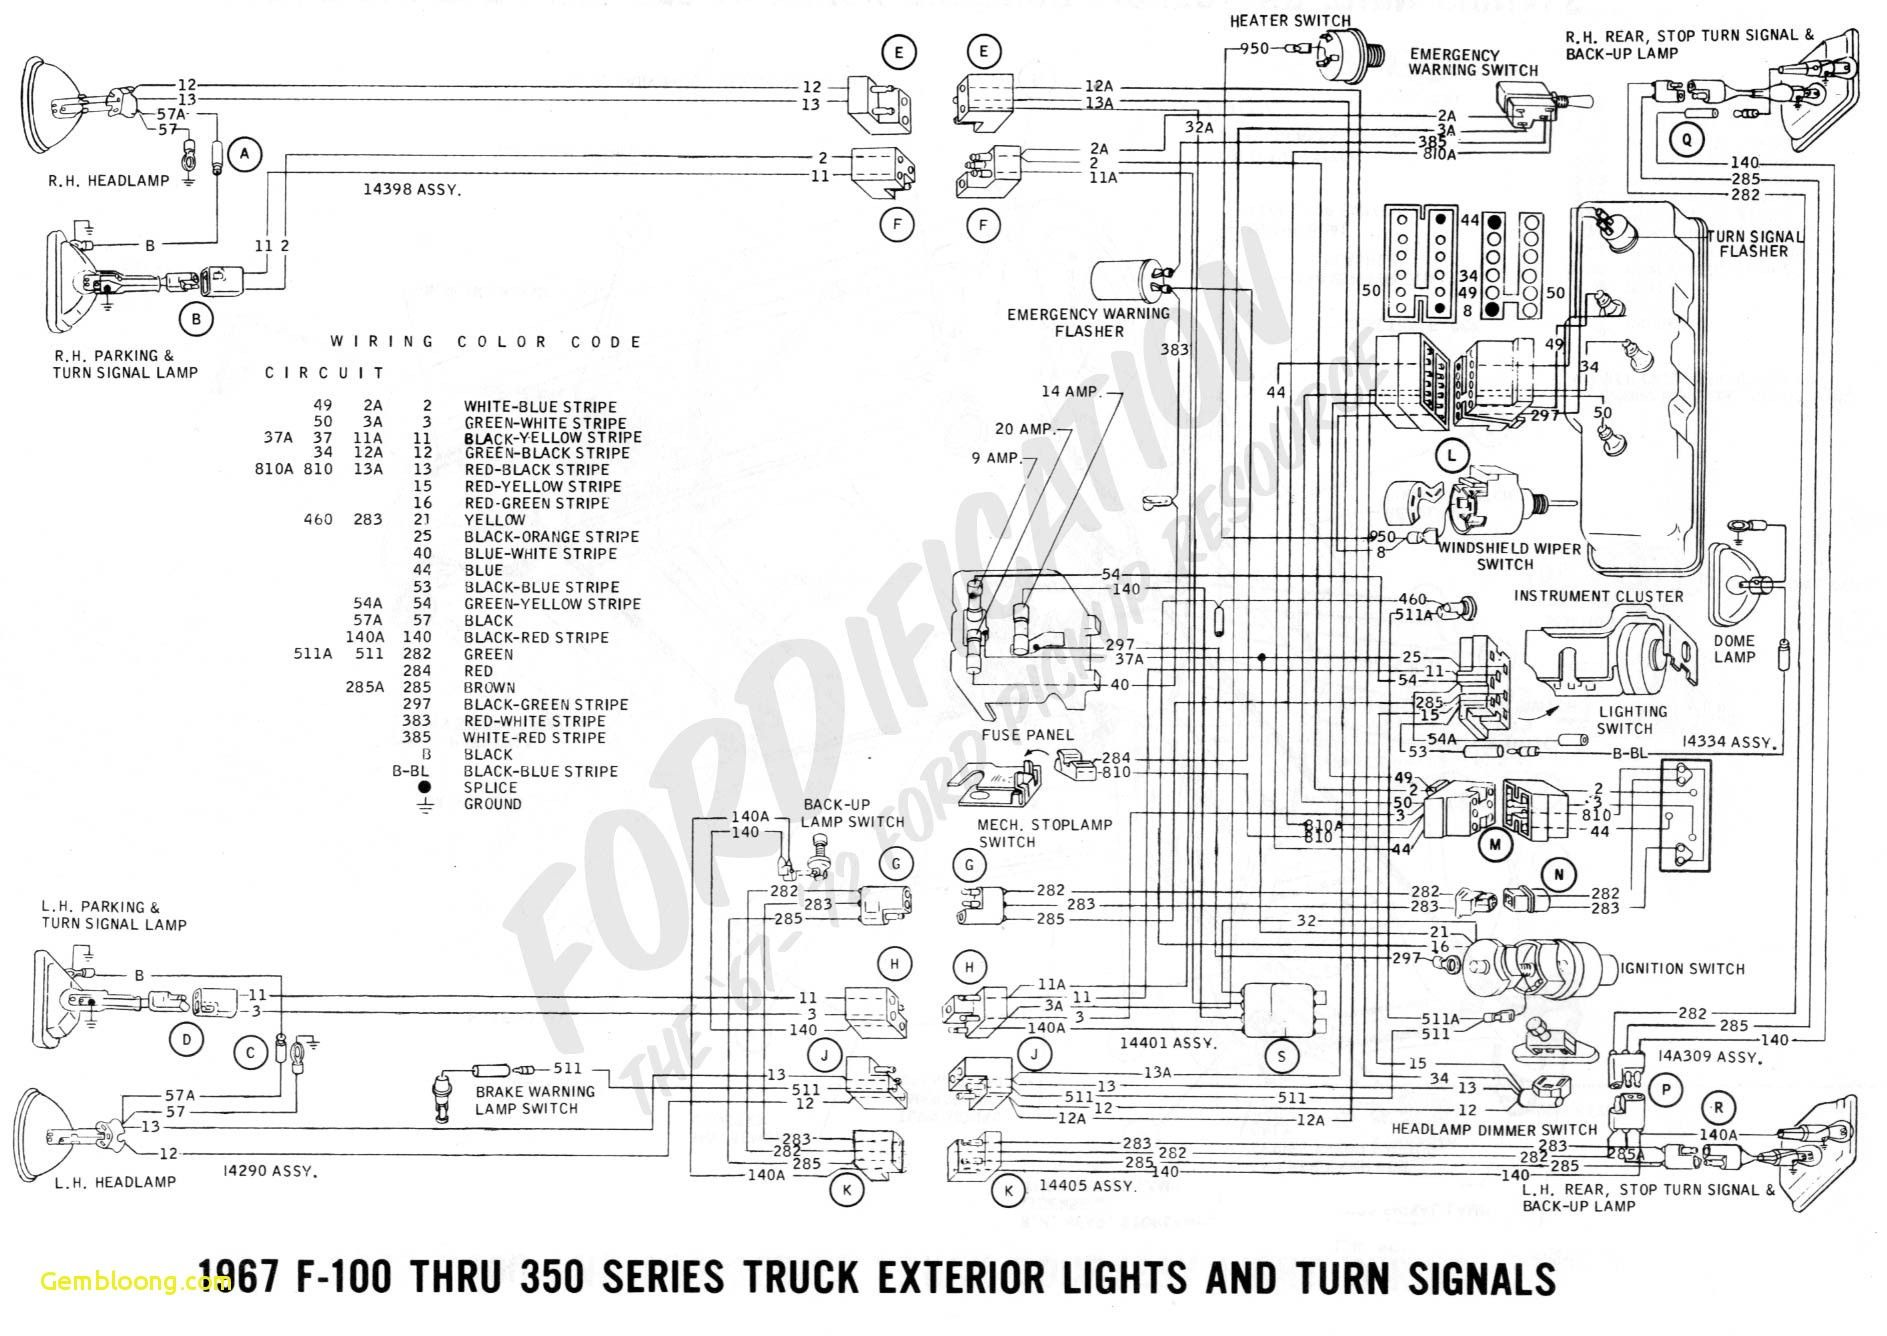 Unique Central Heating Wiring Diagram Uk Jeep grand